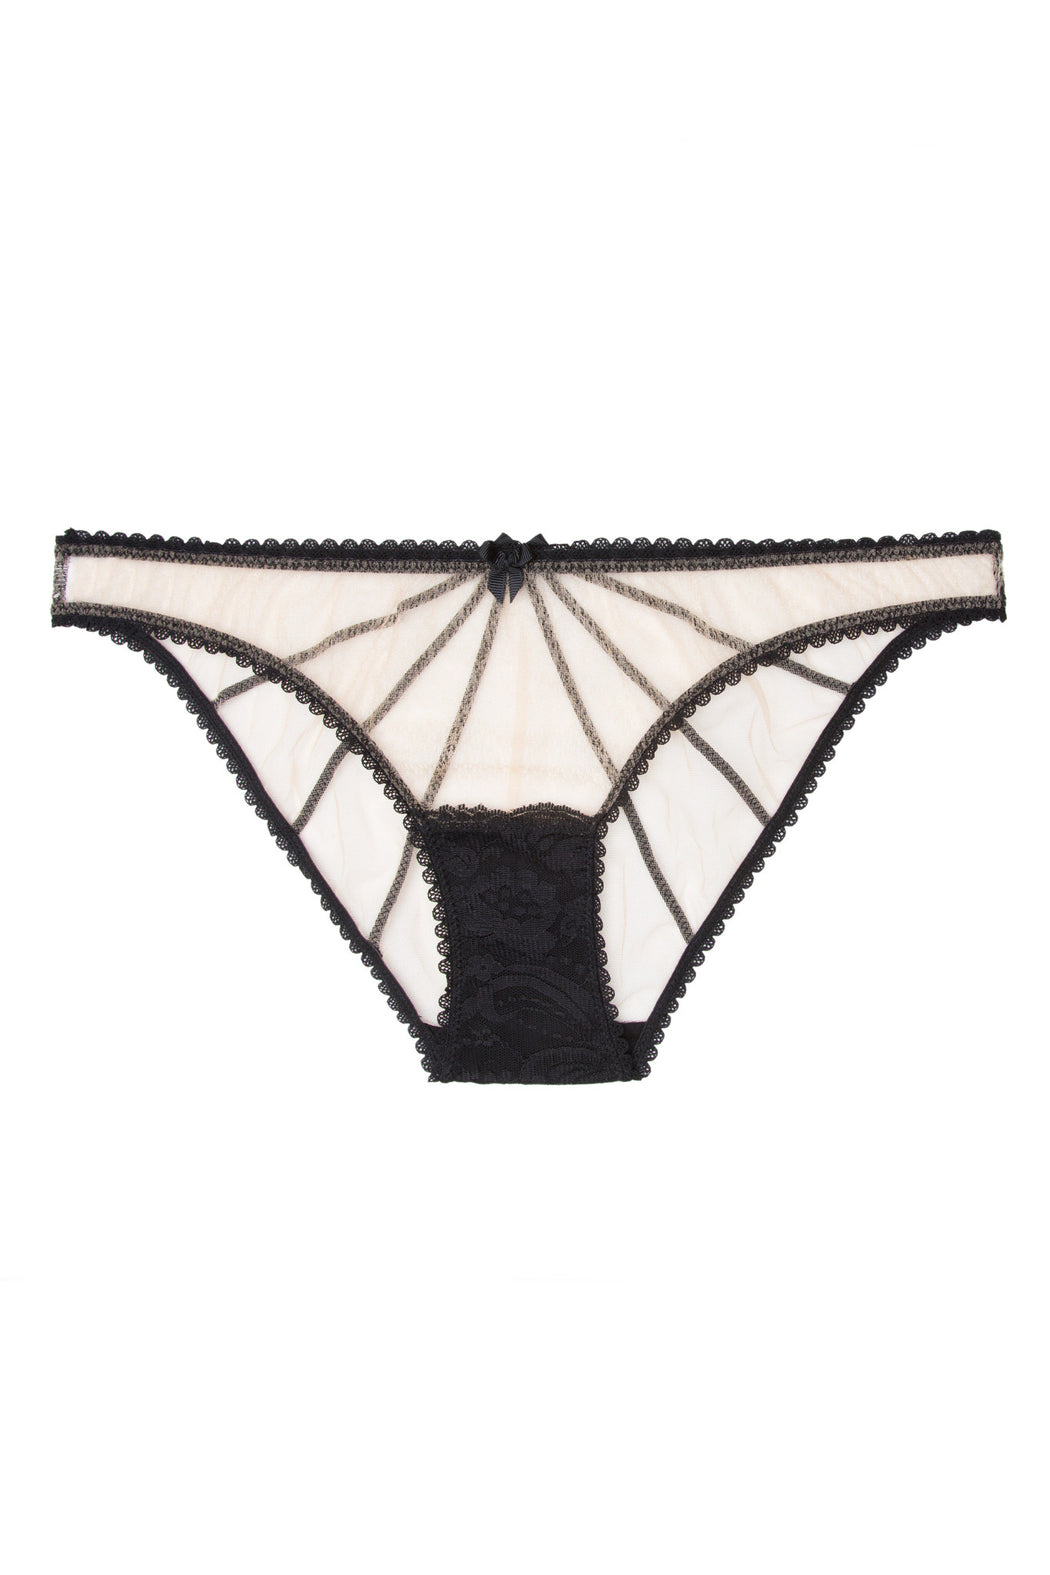 Nude Star knicker by Mimi Holliday black lace workingirls lingerie